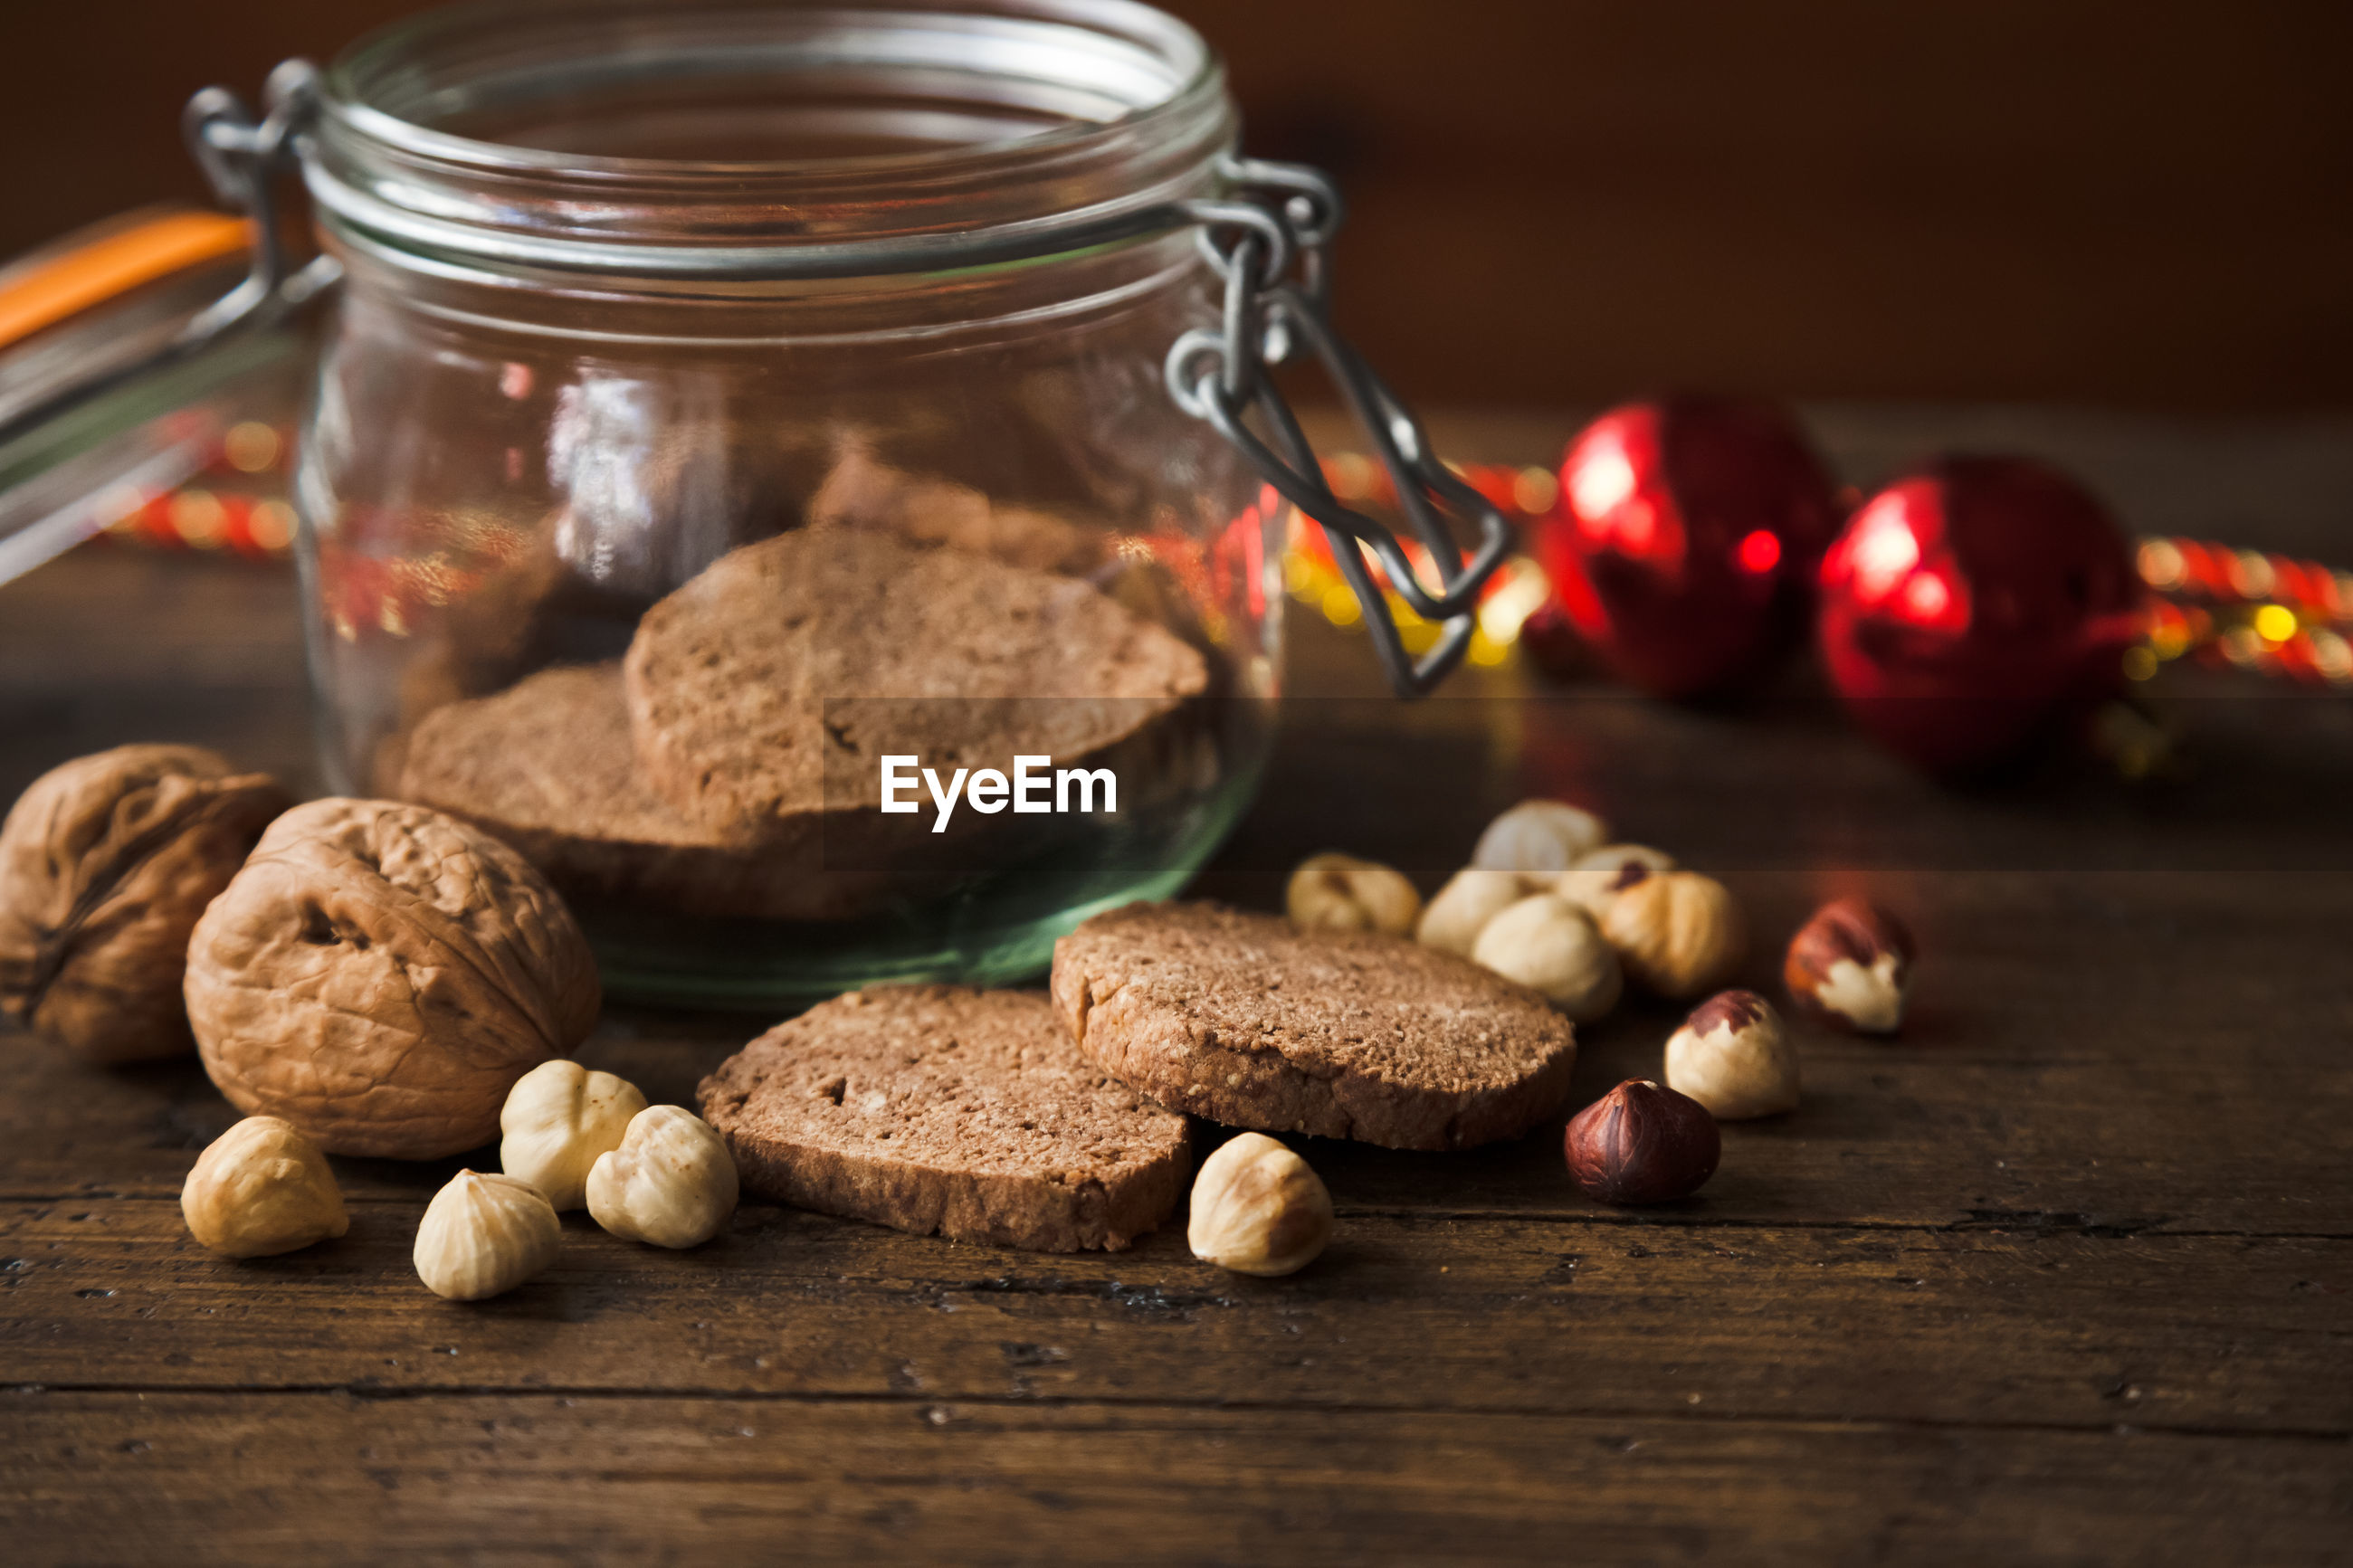 Close-up of cookies and walnuts by jar on table